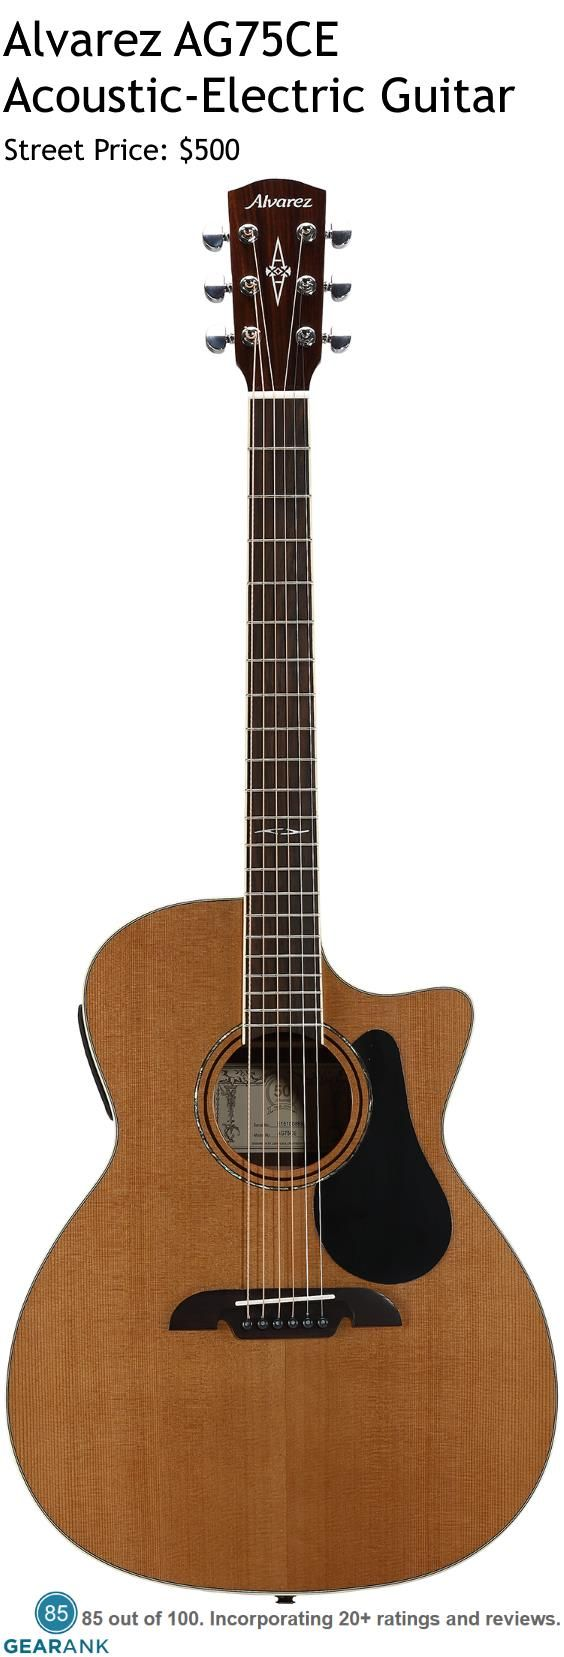 Alvarez AG75CE Acoustic-Electric Guitar.  This is one of Alvarez's best selling guitars.  For a Detailed Guide to The Best Acoustic Guitars see https://www.gearank.com/guides/acoustic-guitars